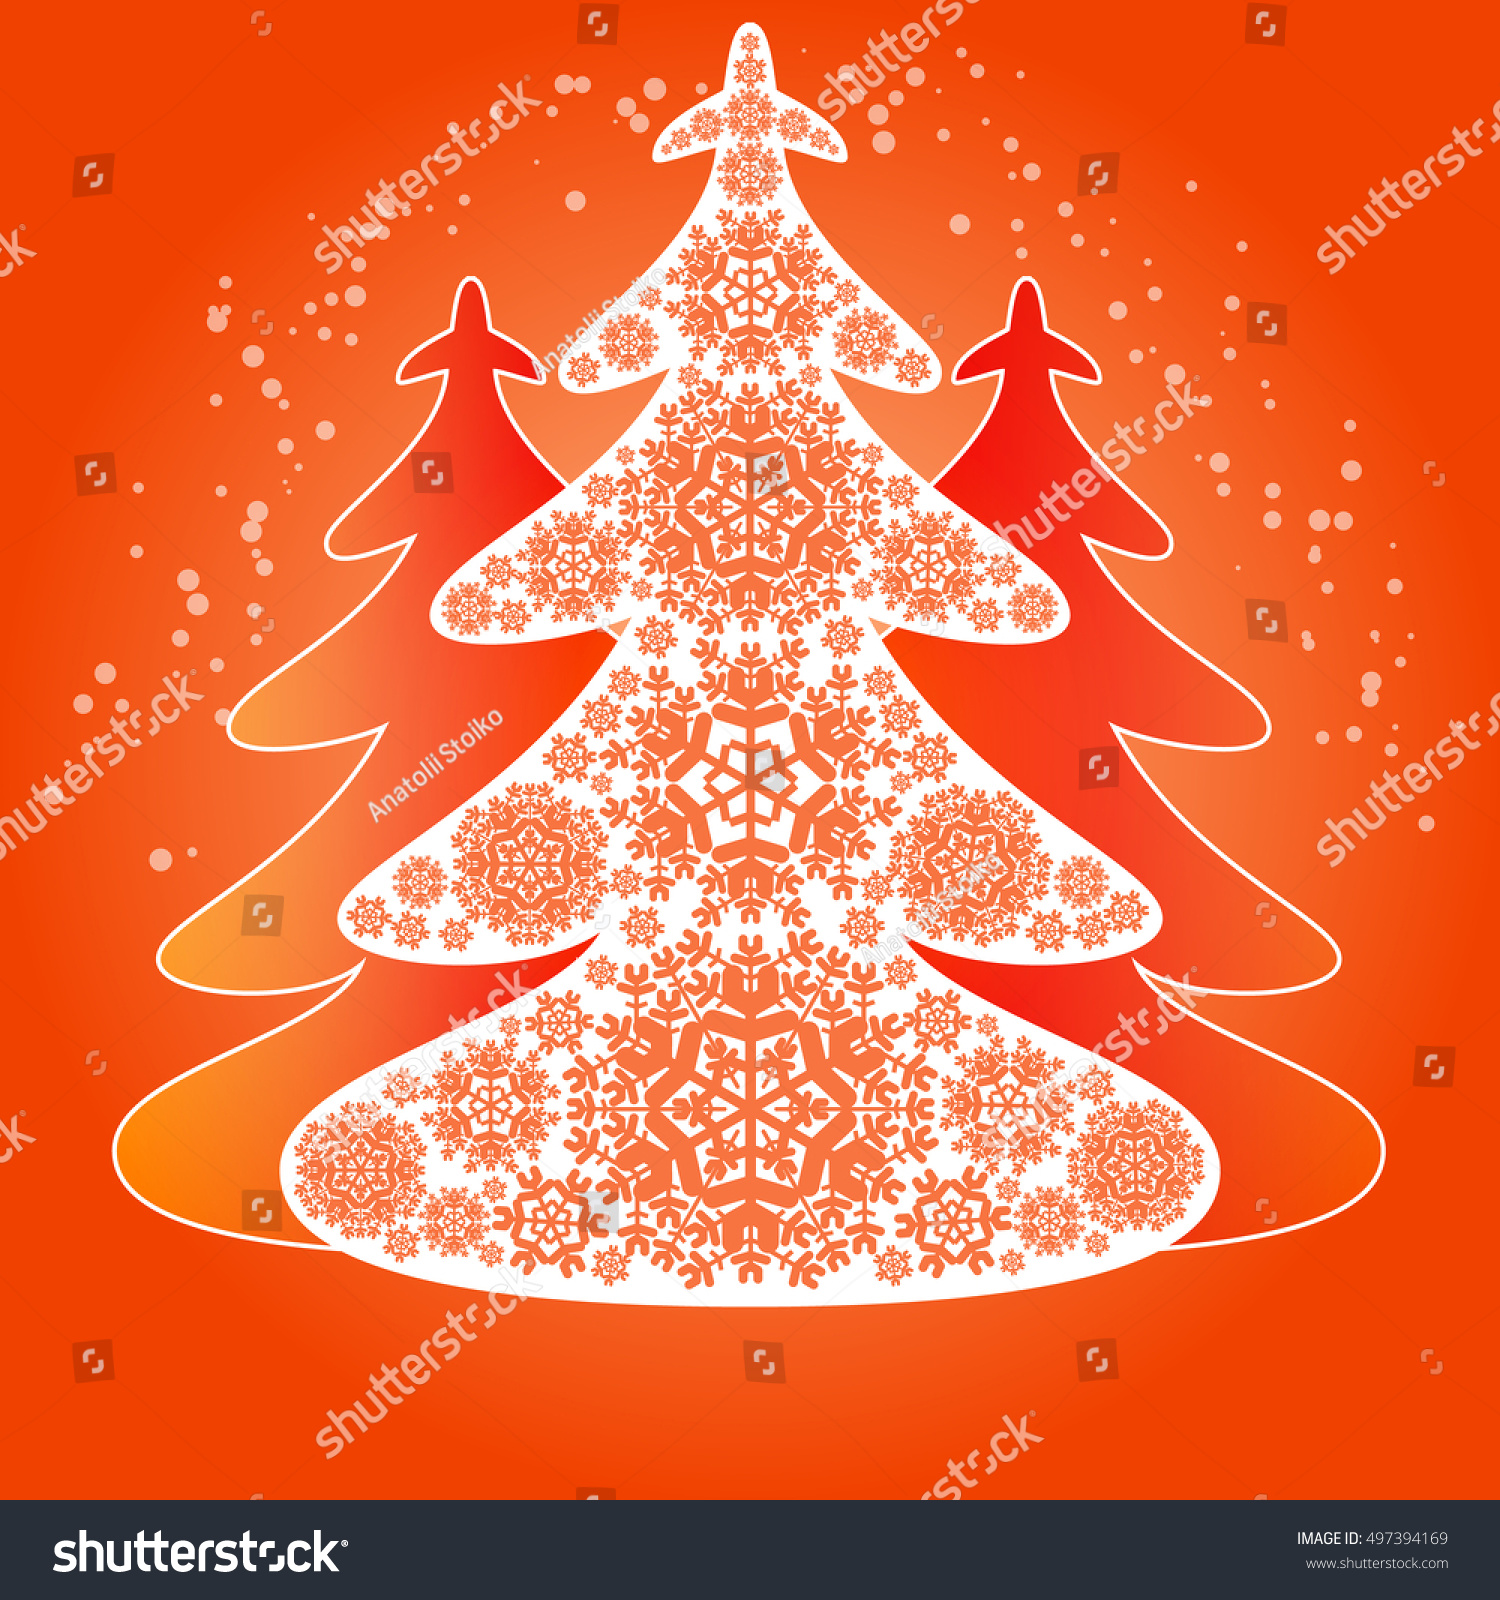 hristmas tree from white snowflakes orange christmas background - Orange Christmas Tree